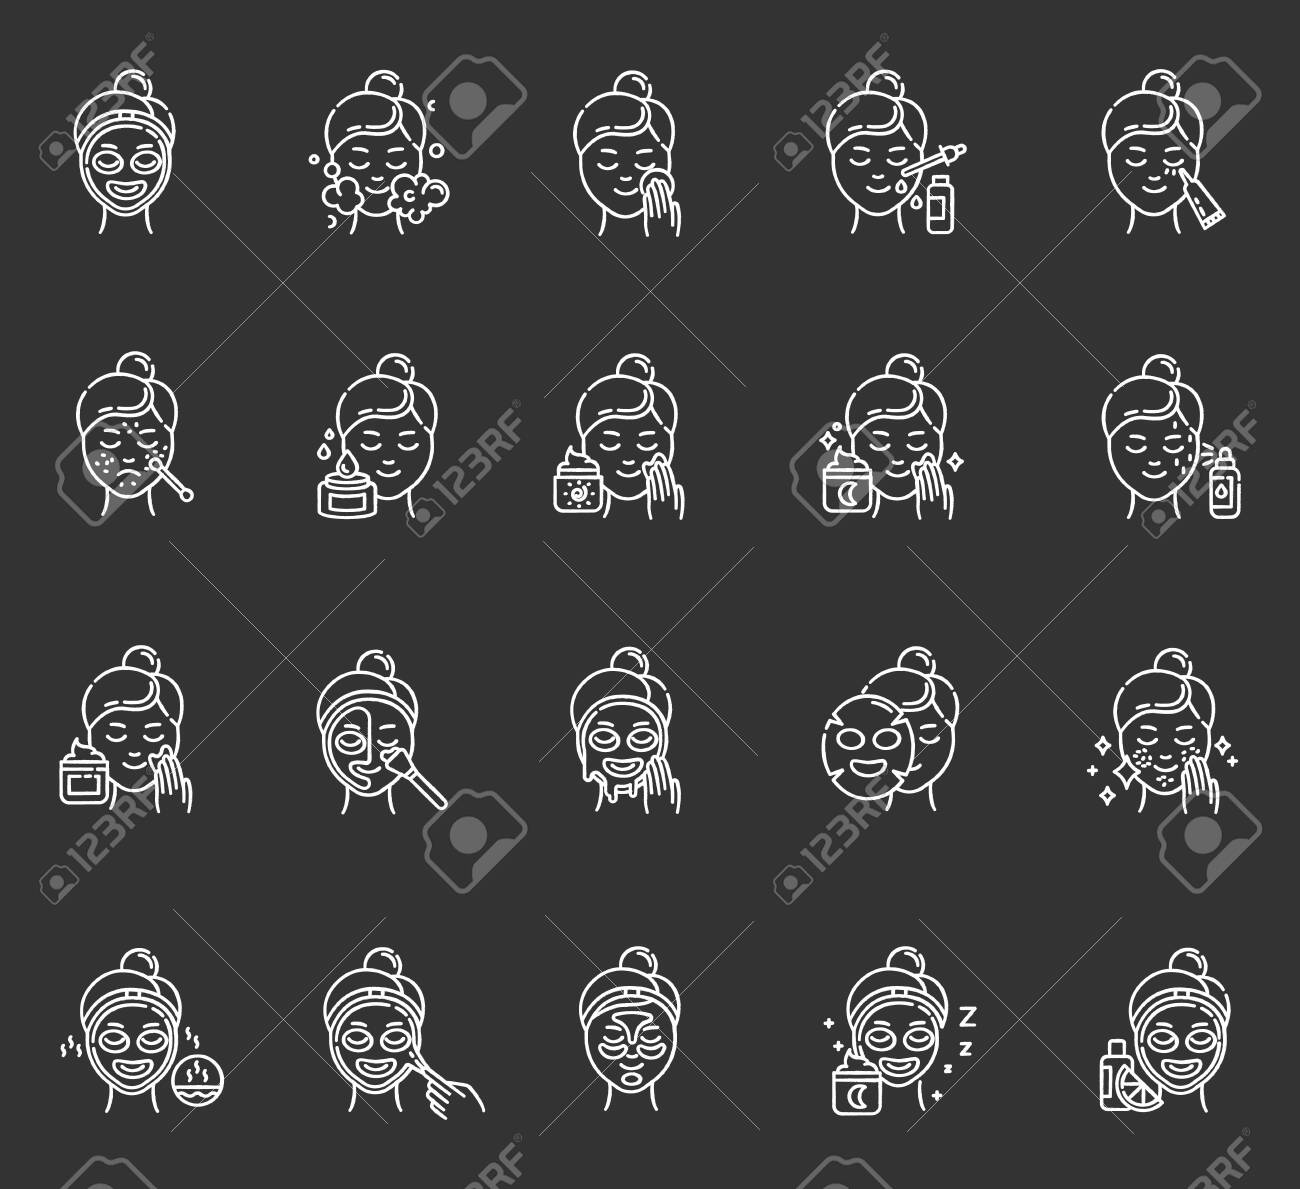 Skin care procedures chalk icons set. Using face cream. Liquid, sheet, peel-off mask. Beauty products. Night time routine. Spot treatment. Vitamin C serum. Isolated vector chalkboard illustrations - 134836410